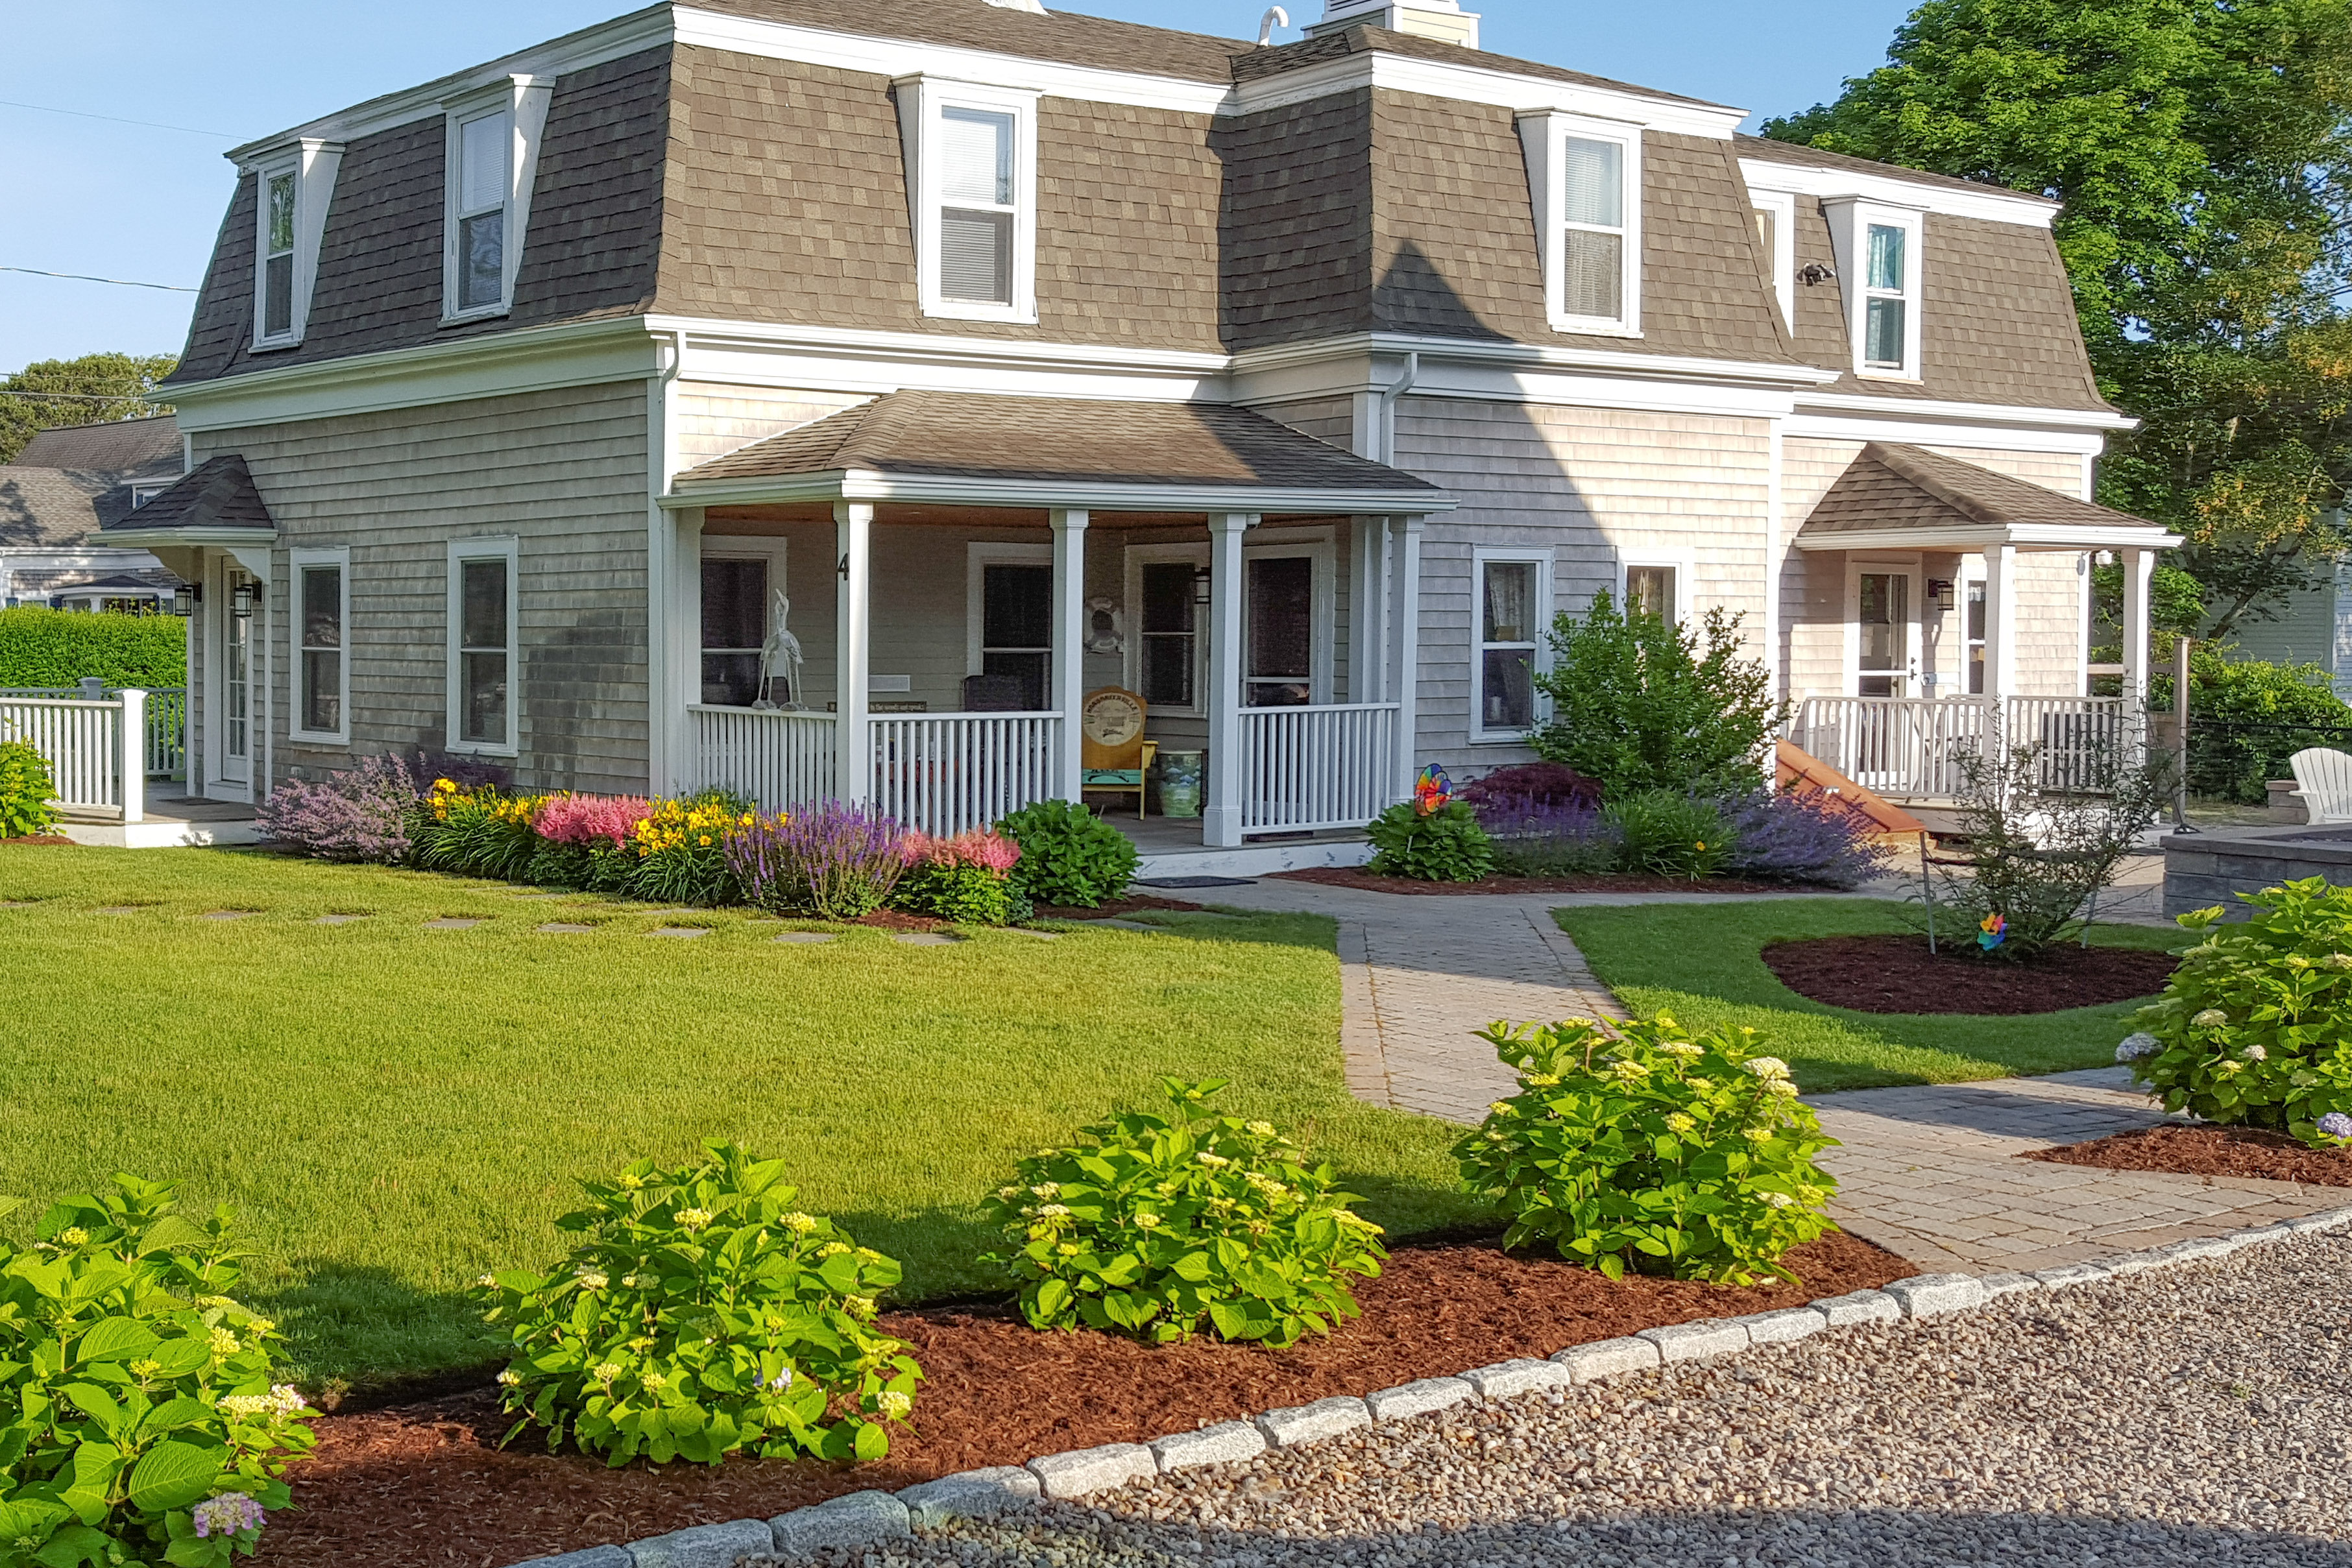 West Dennis MA Vacation Rental Welcome to West